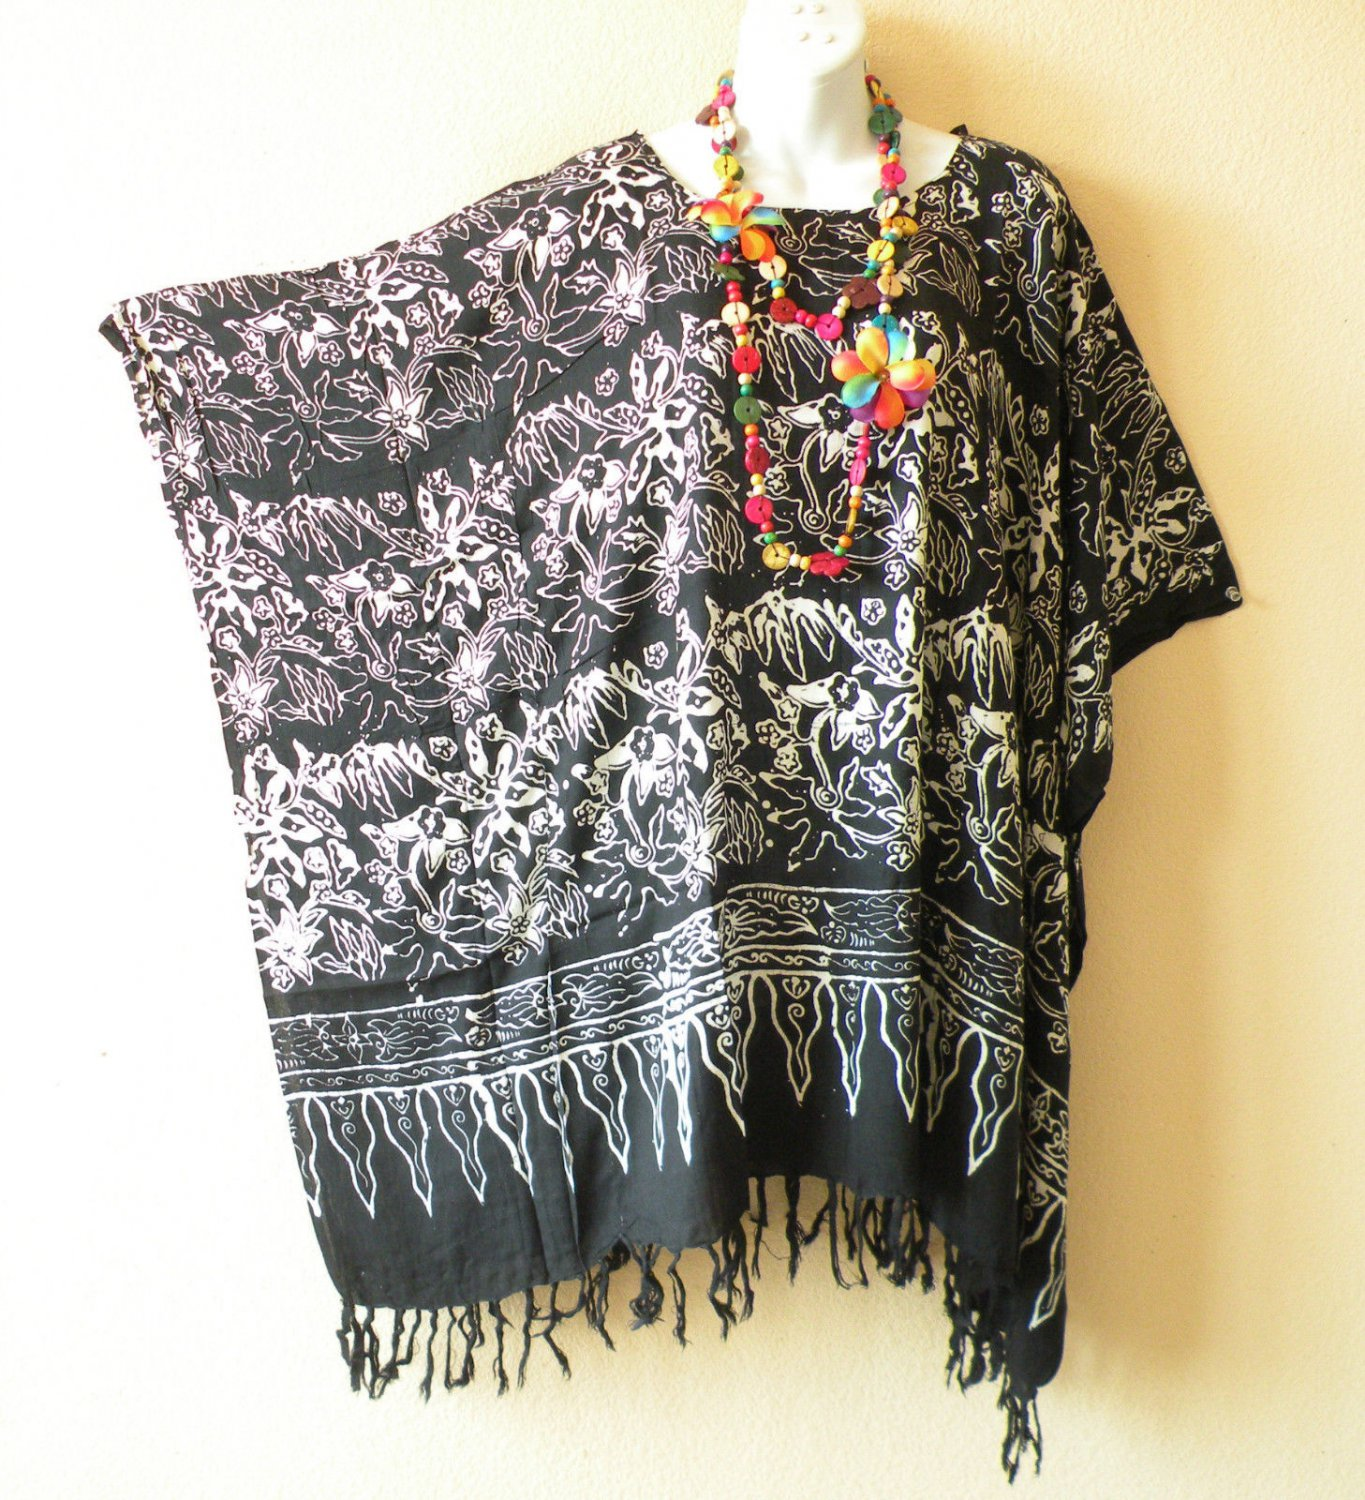 KB92 Black Floral Plus Women Batik Kaftan Poncho Dolman Tunic Top -1X to 4X